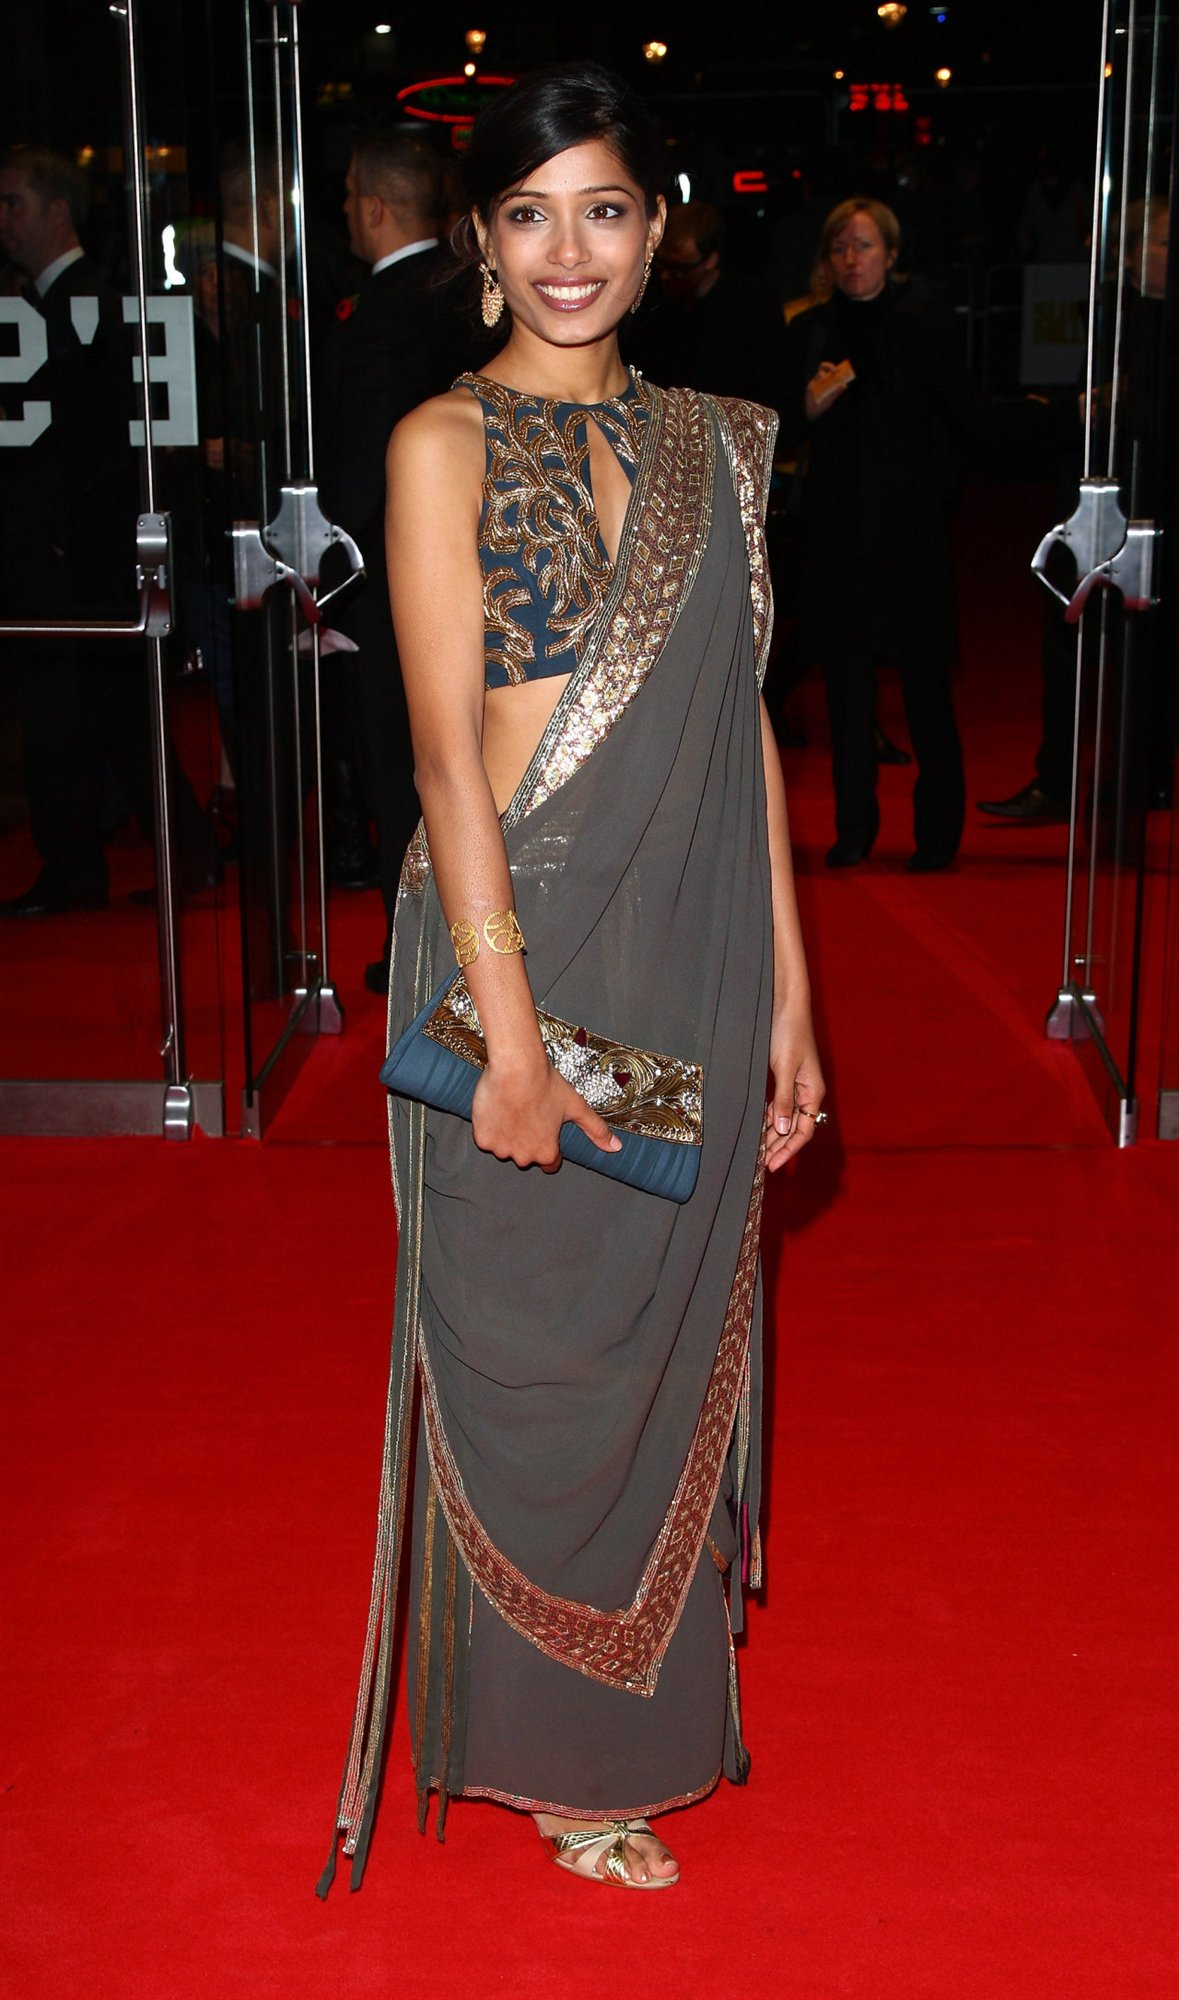 Freida Pinto in Saree  SheClickcom